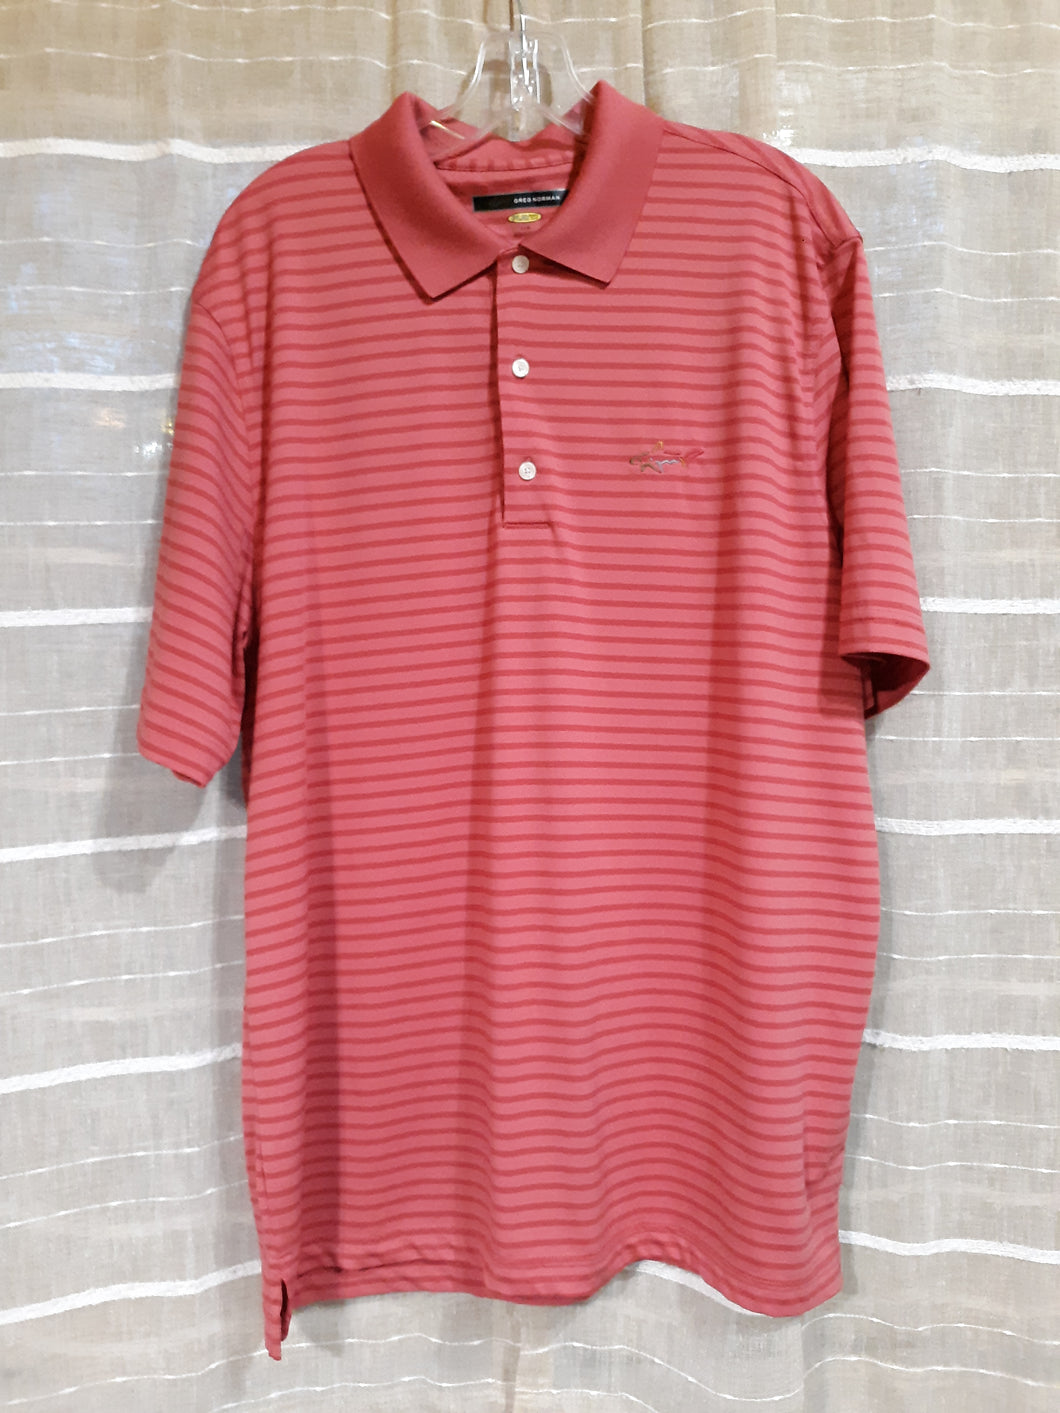 Mens Polo Collared Golf Shirt Size Large